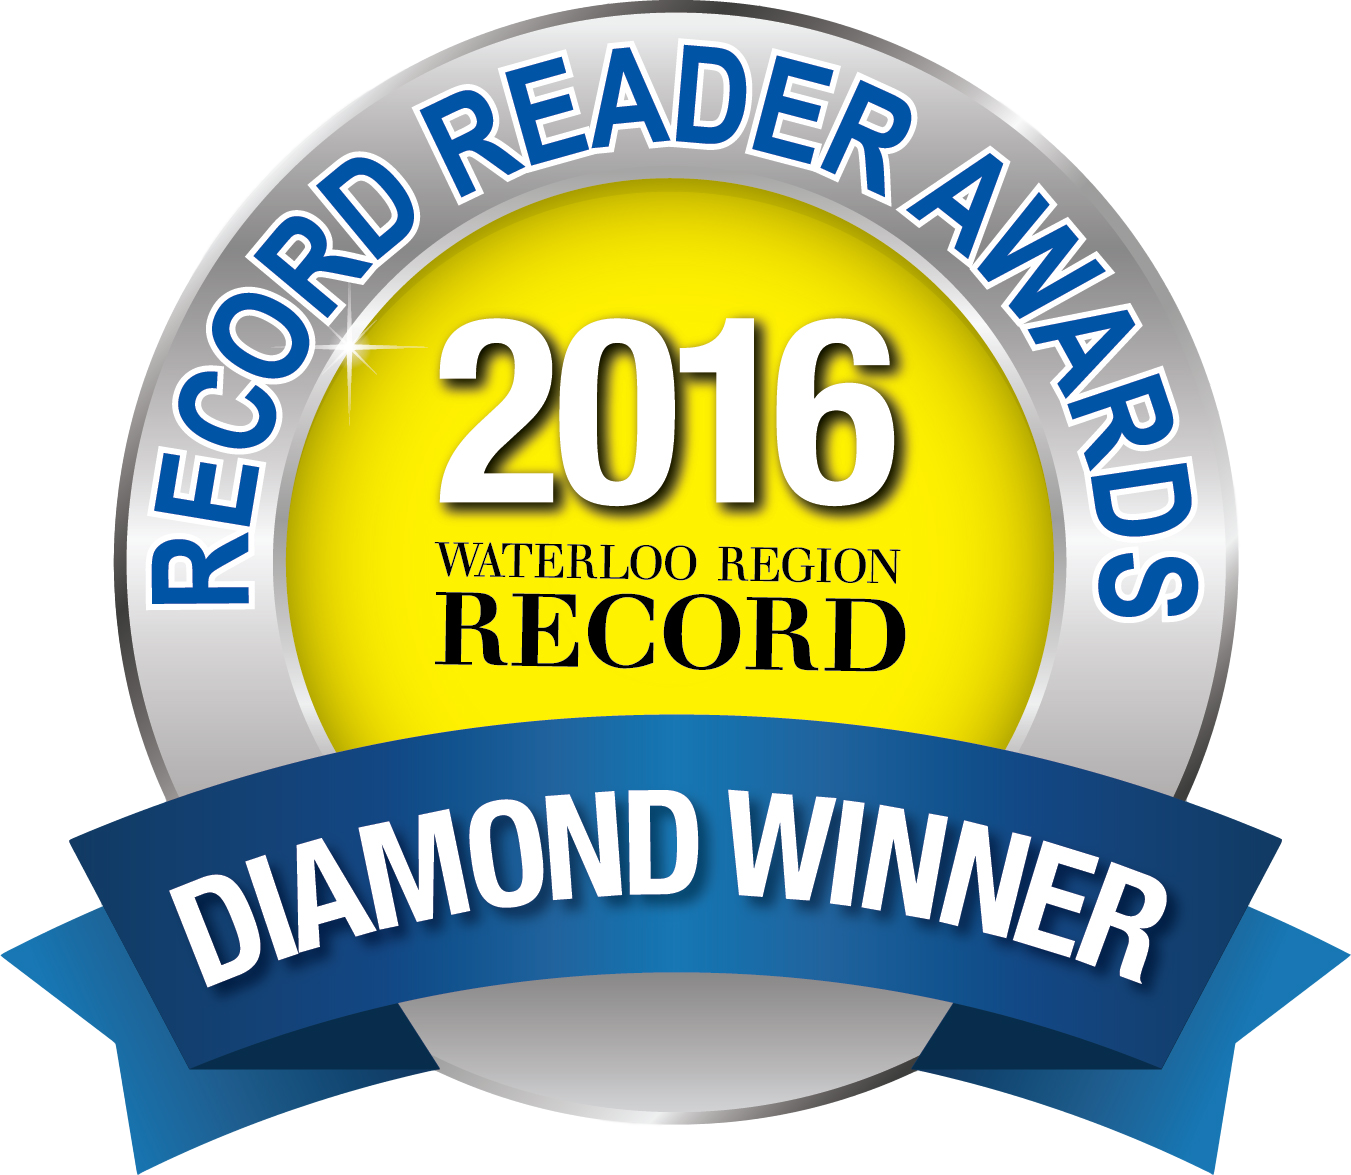 Record Reader Awards Diamond Winner 2016